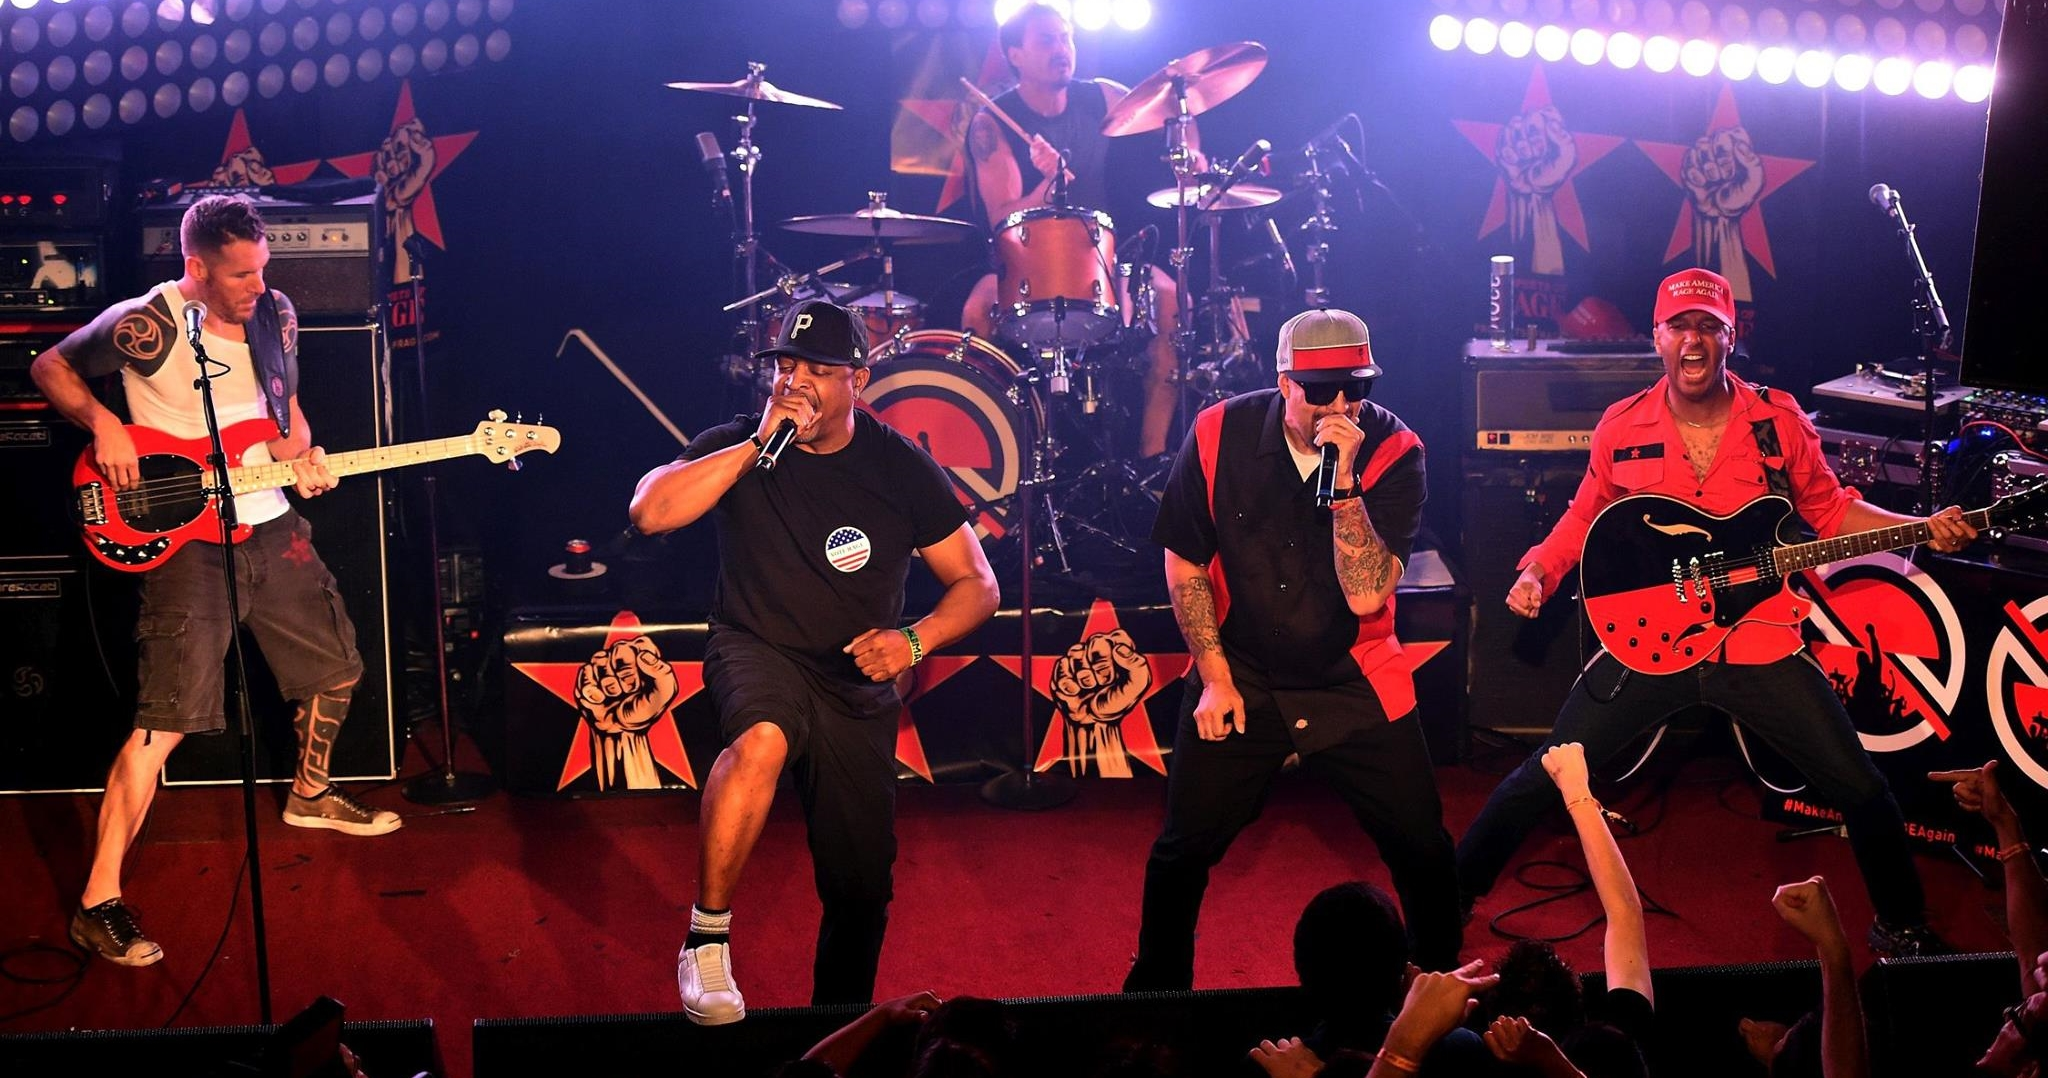 Prophets of Rage would have been the first surprise act to perform a set at Governors Ball.